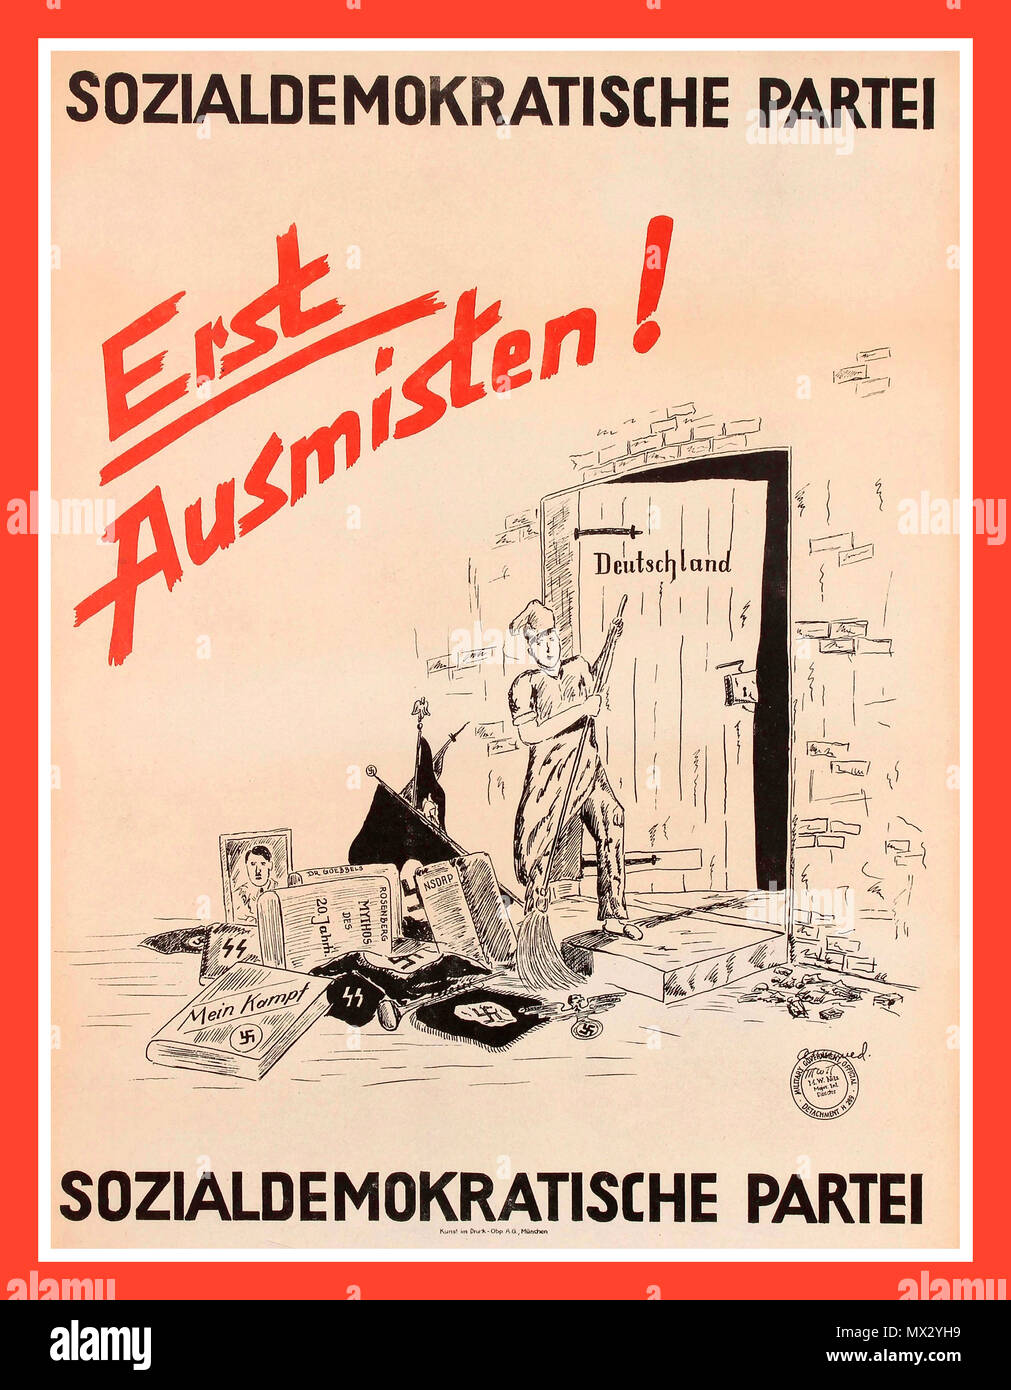 Vintage 1945 Germany post World War Two propaganda poster: Erst Ausmisten! Shows Germany being cleared from Nazi political memorabilia and Adolf Hitler's Mein Kampf. Issued by the Social Democratic Party of Germany Germany. Year 1940s. - Stock Image